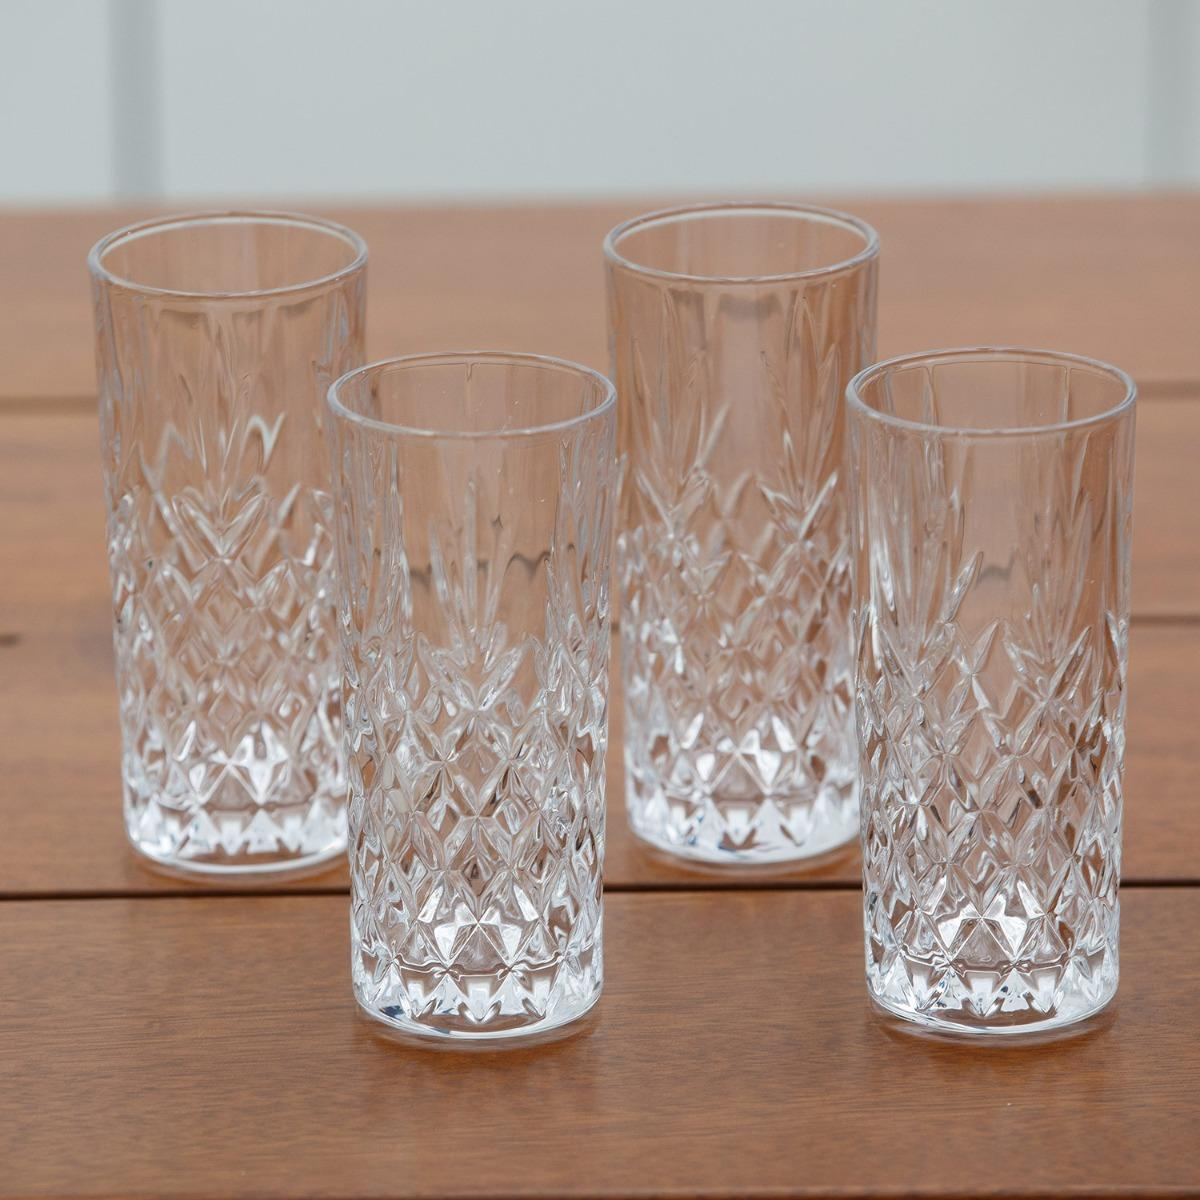 Galway Crystal Highball glasses